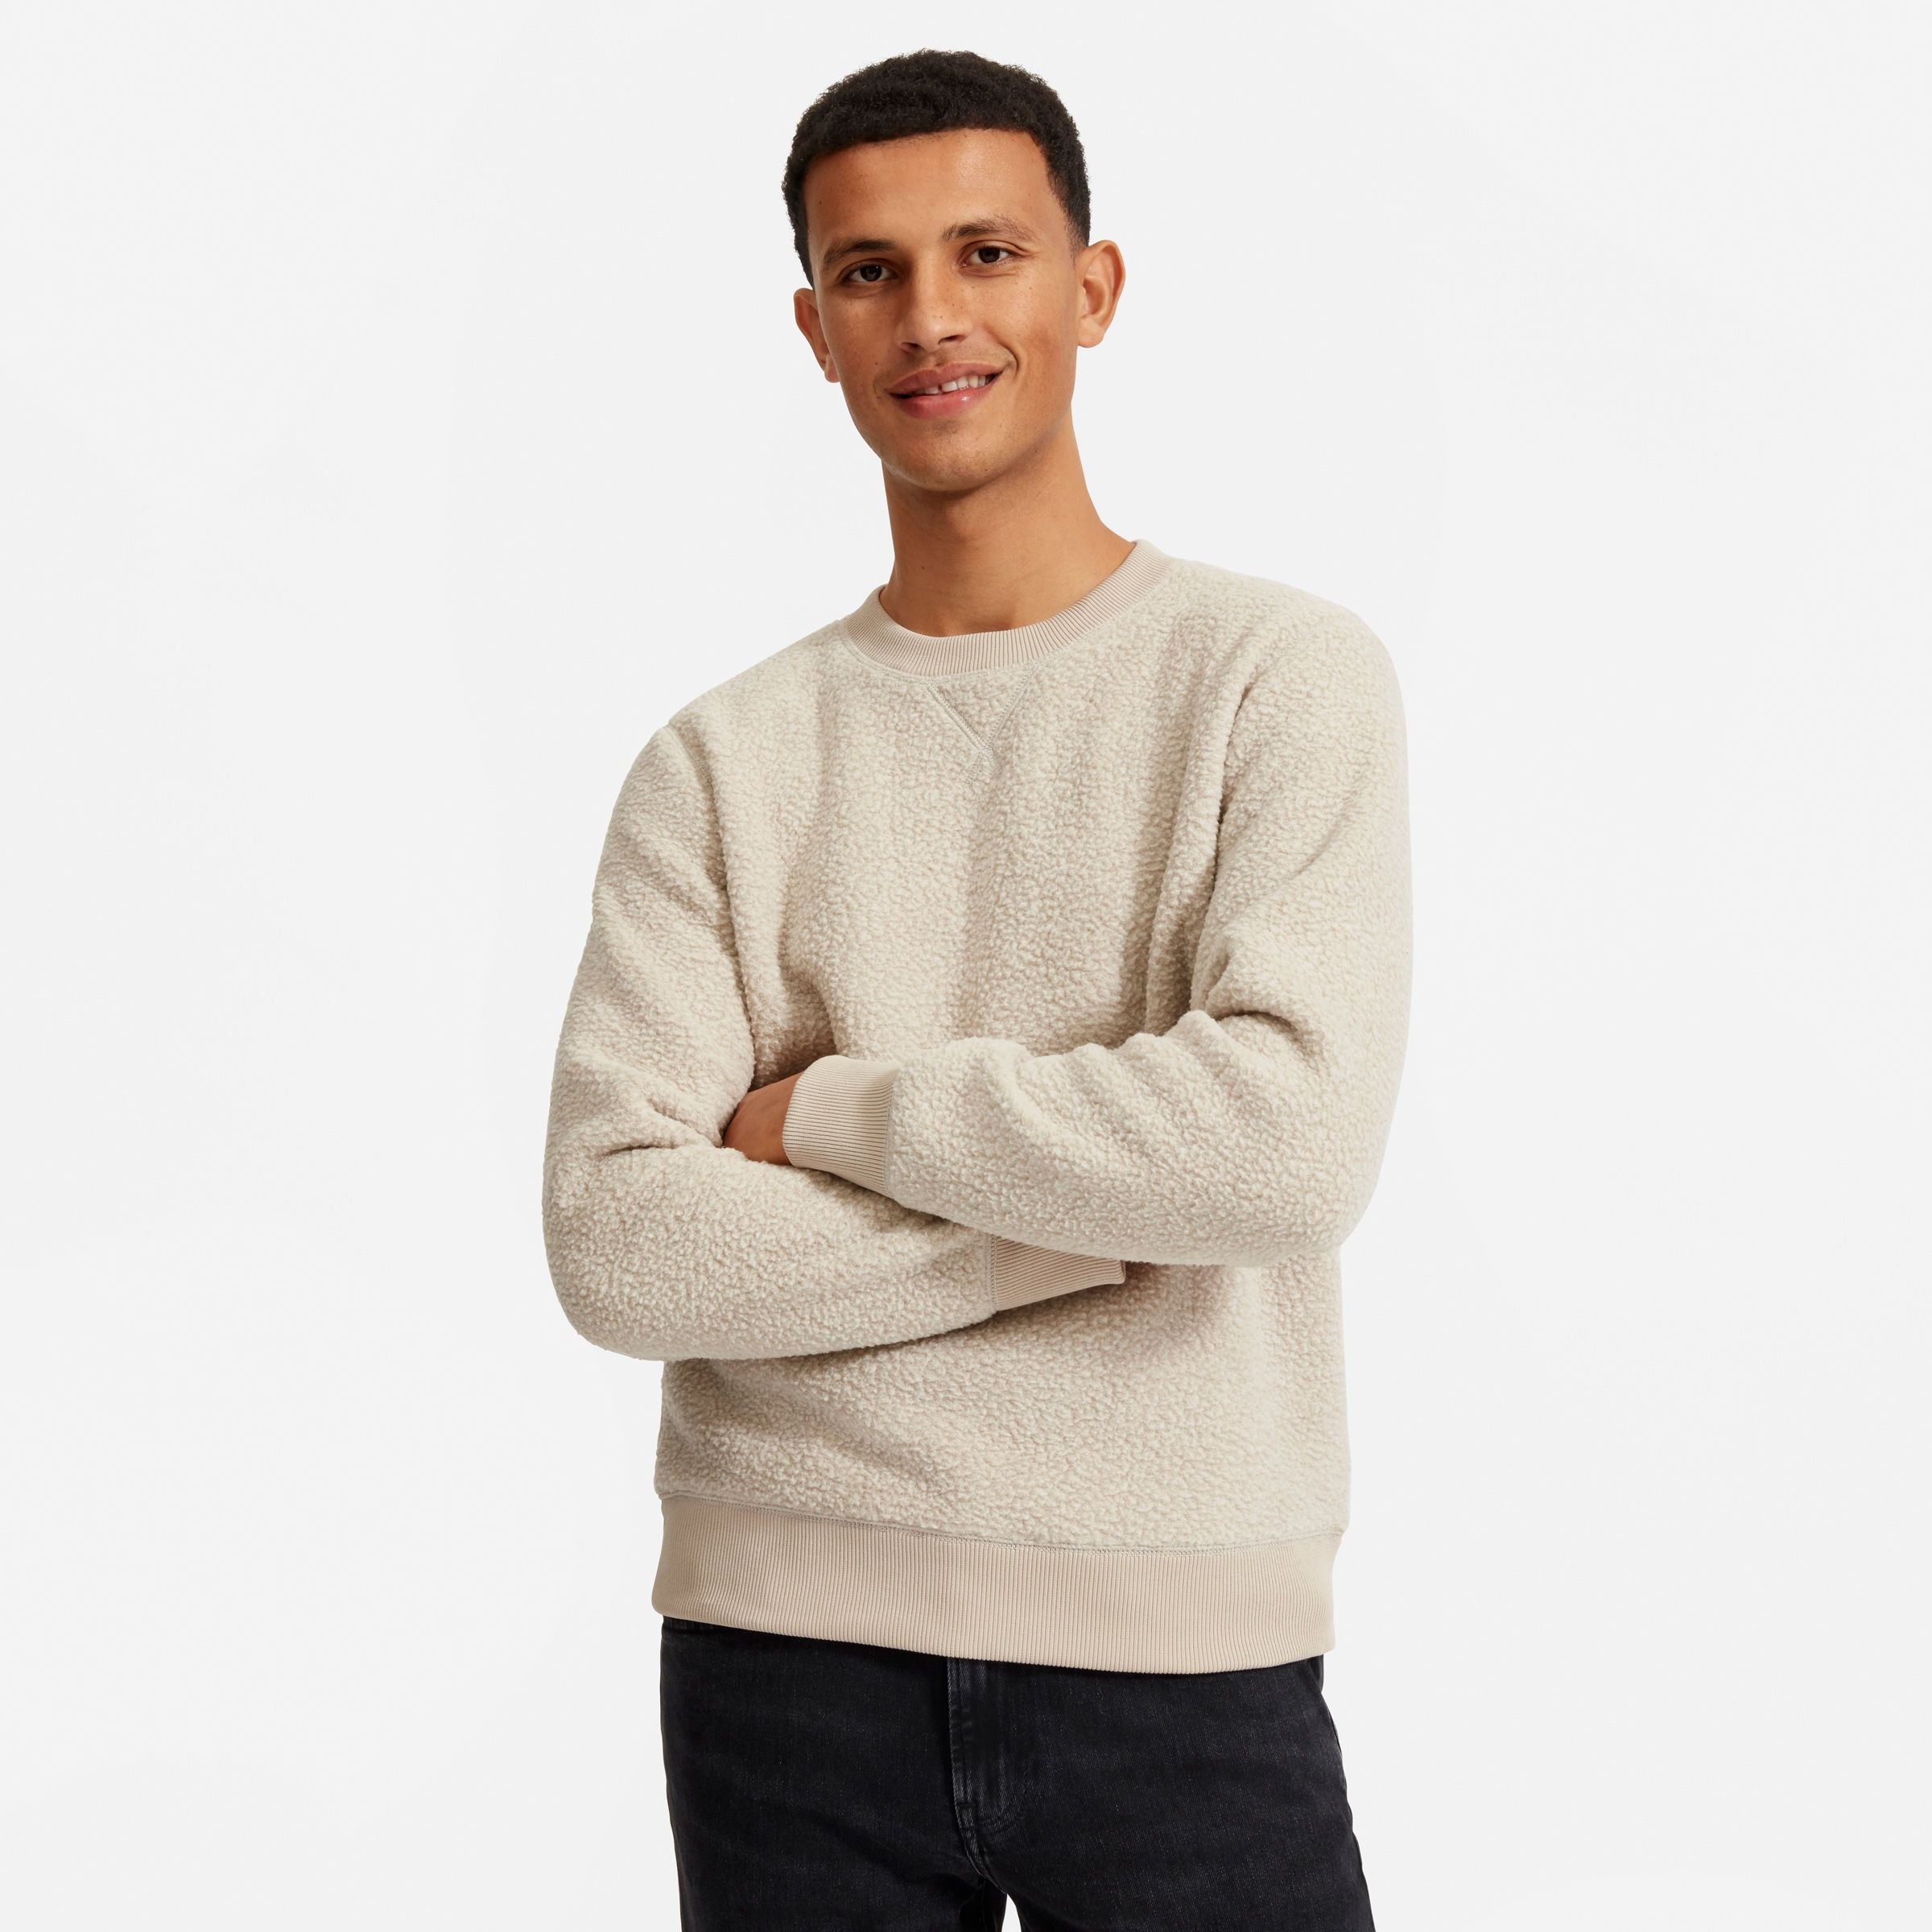 The Renew Oversized Fleece Sweatshirt Has An Easy Roomy Fit Ribbed Cuffs And Thoughtful Details Plus This Warm Sweatshirt Fleece Sweatshirts Cozy Pullover [ 2400 x 2400 Pixel ]